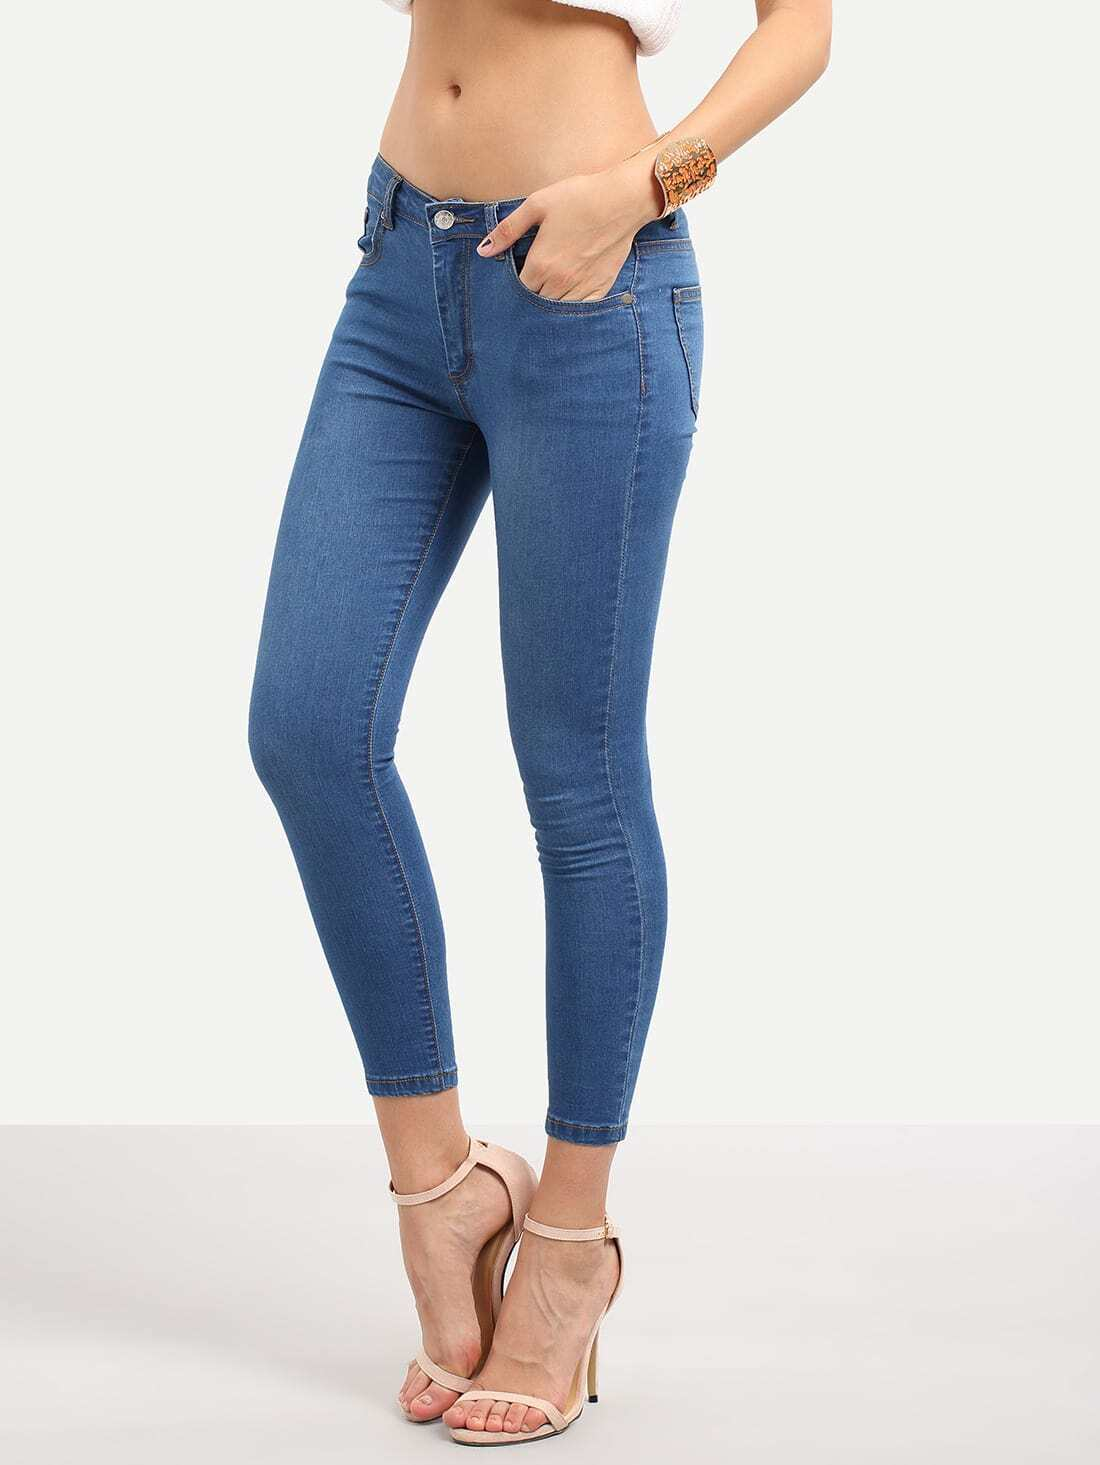 Womens jeans  Check our jeans for women  GStar RAW